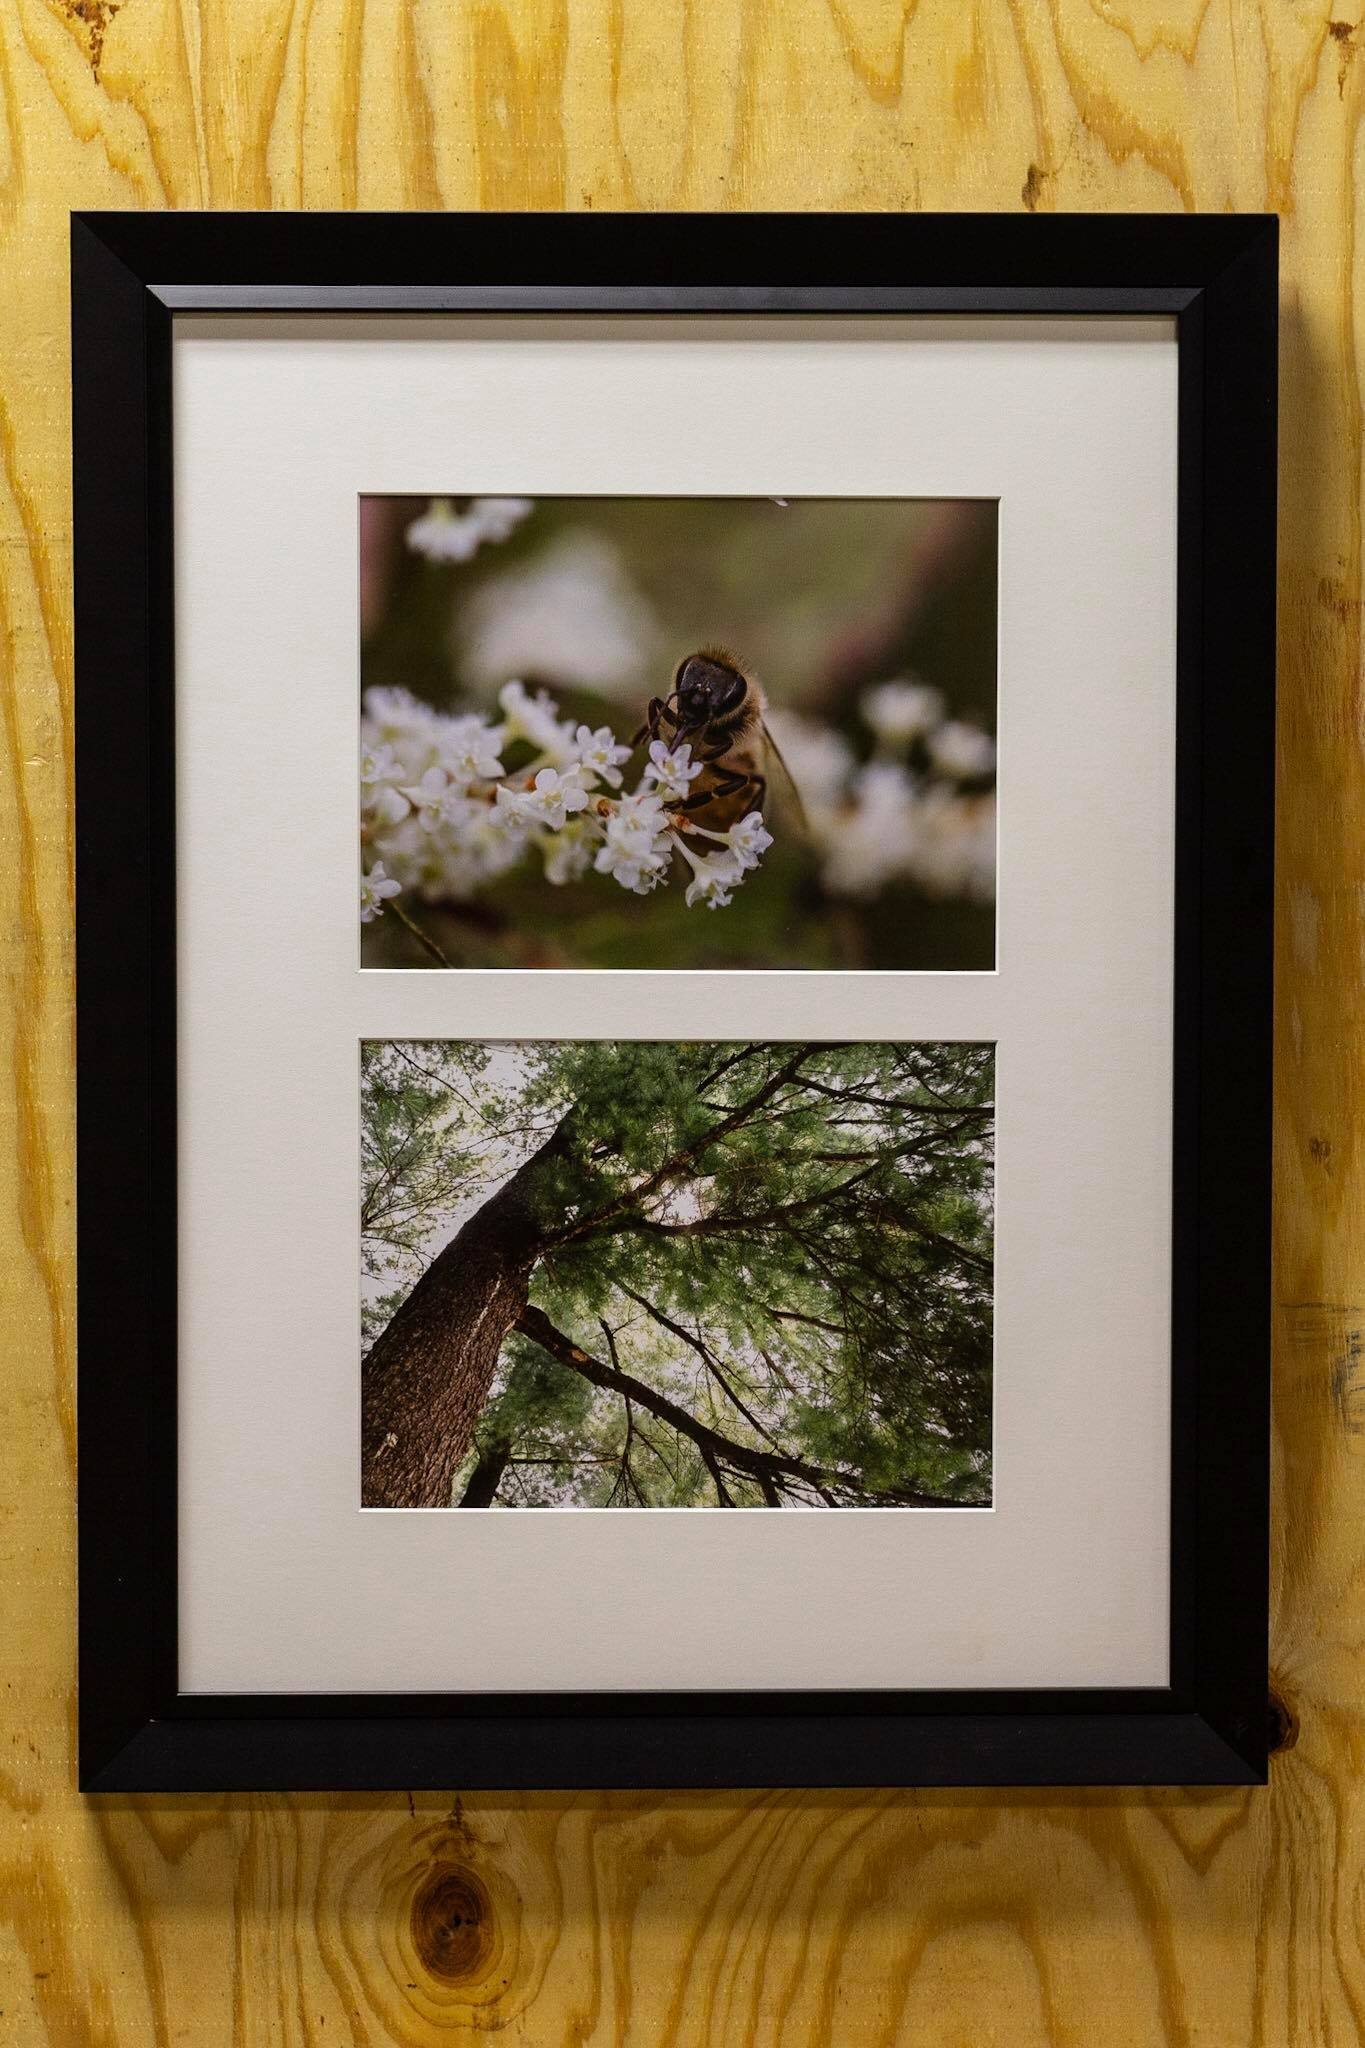 Bee and Tree photos by Anon.jpg